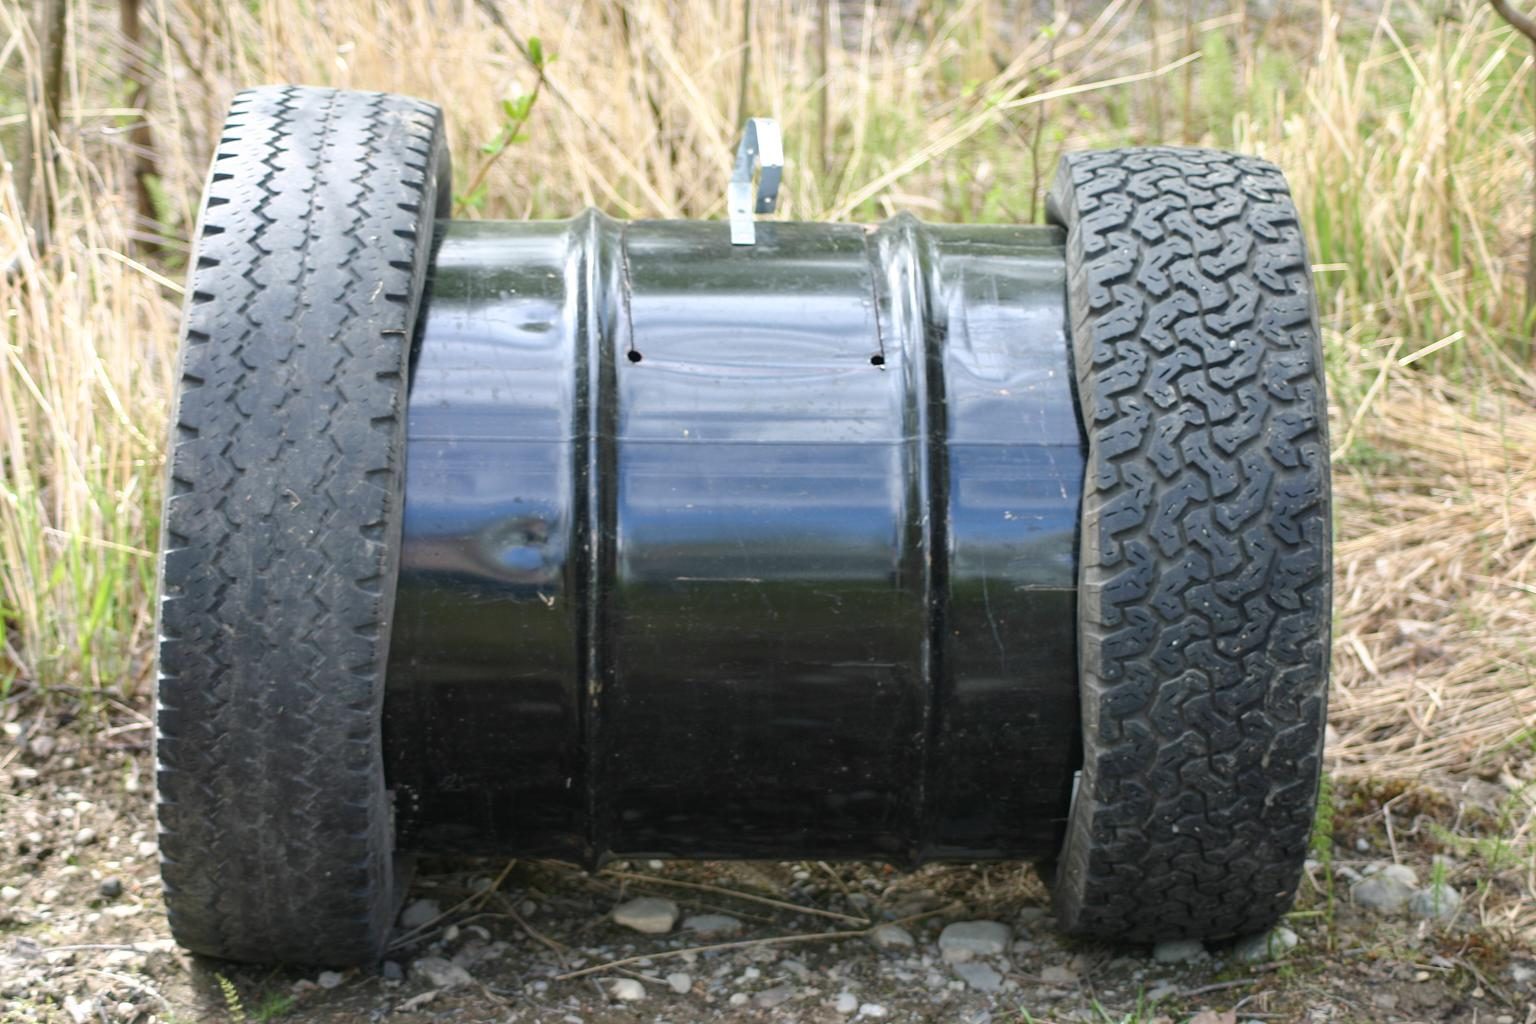 Easy Recycled Compost Barrel